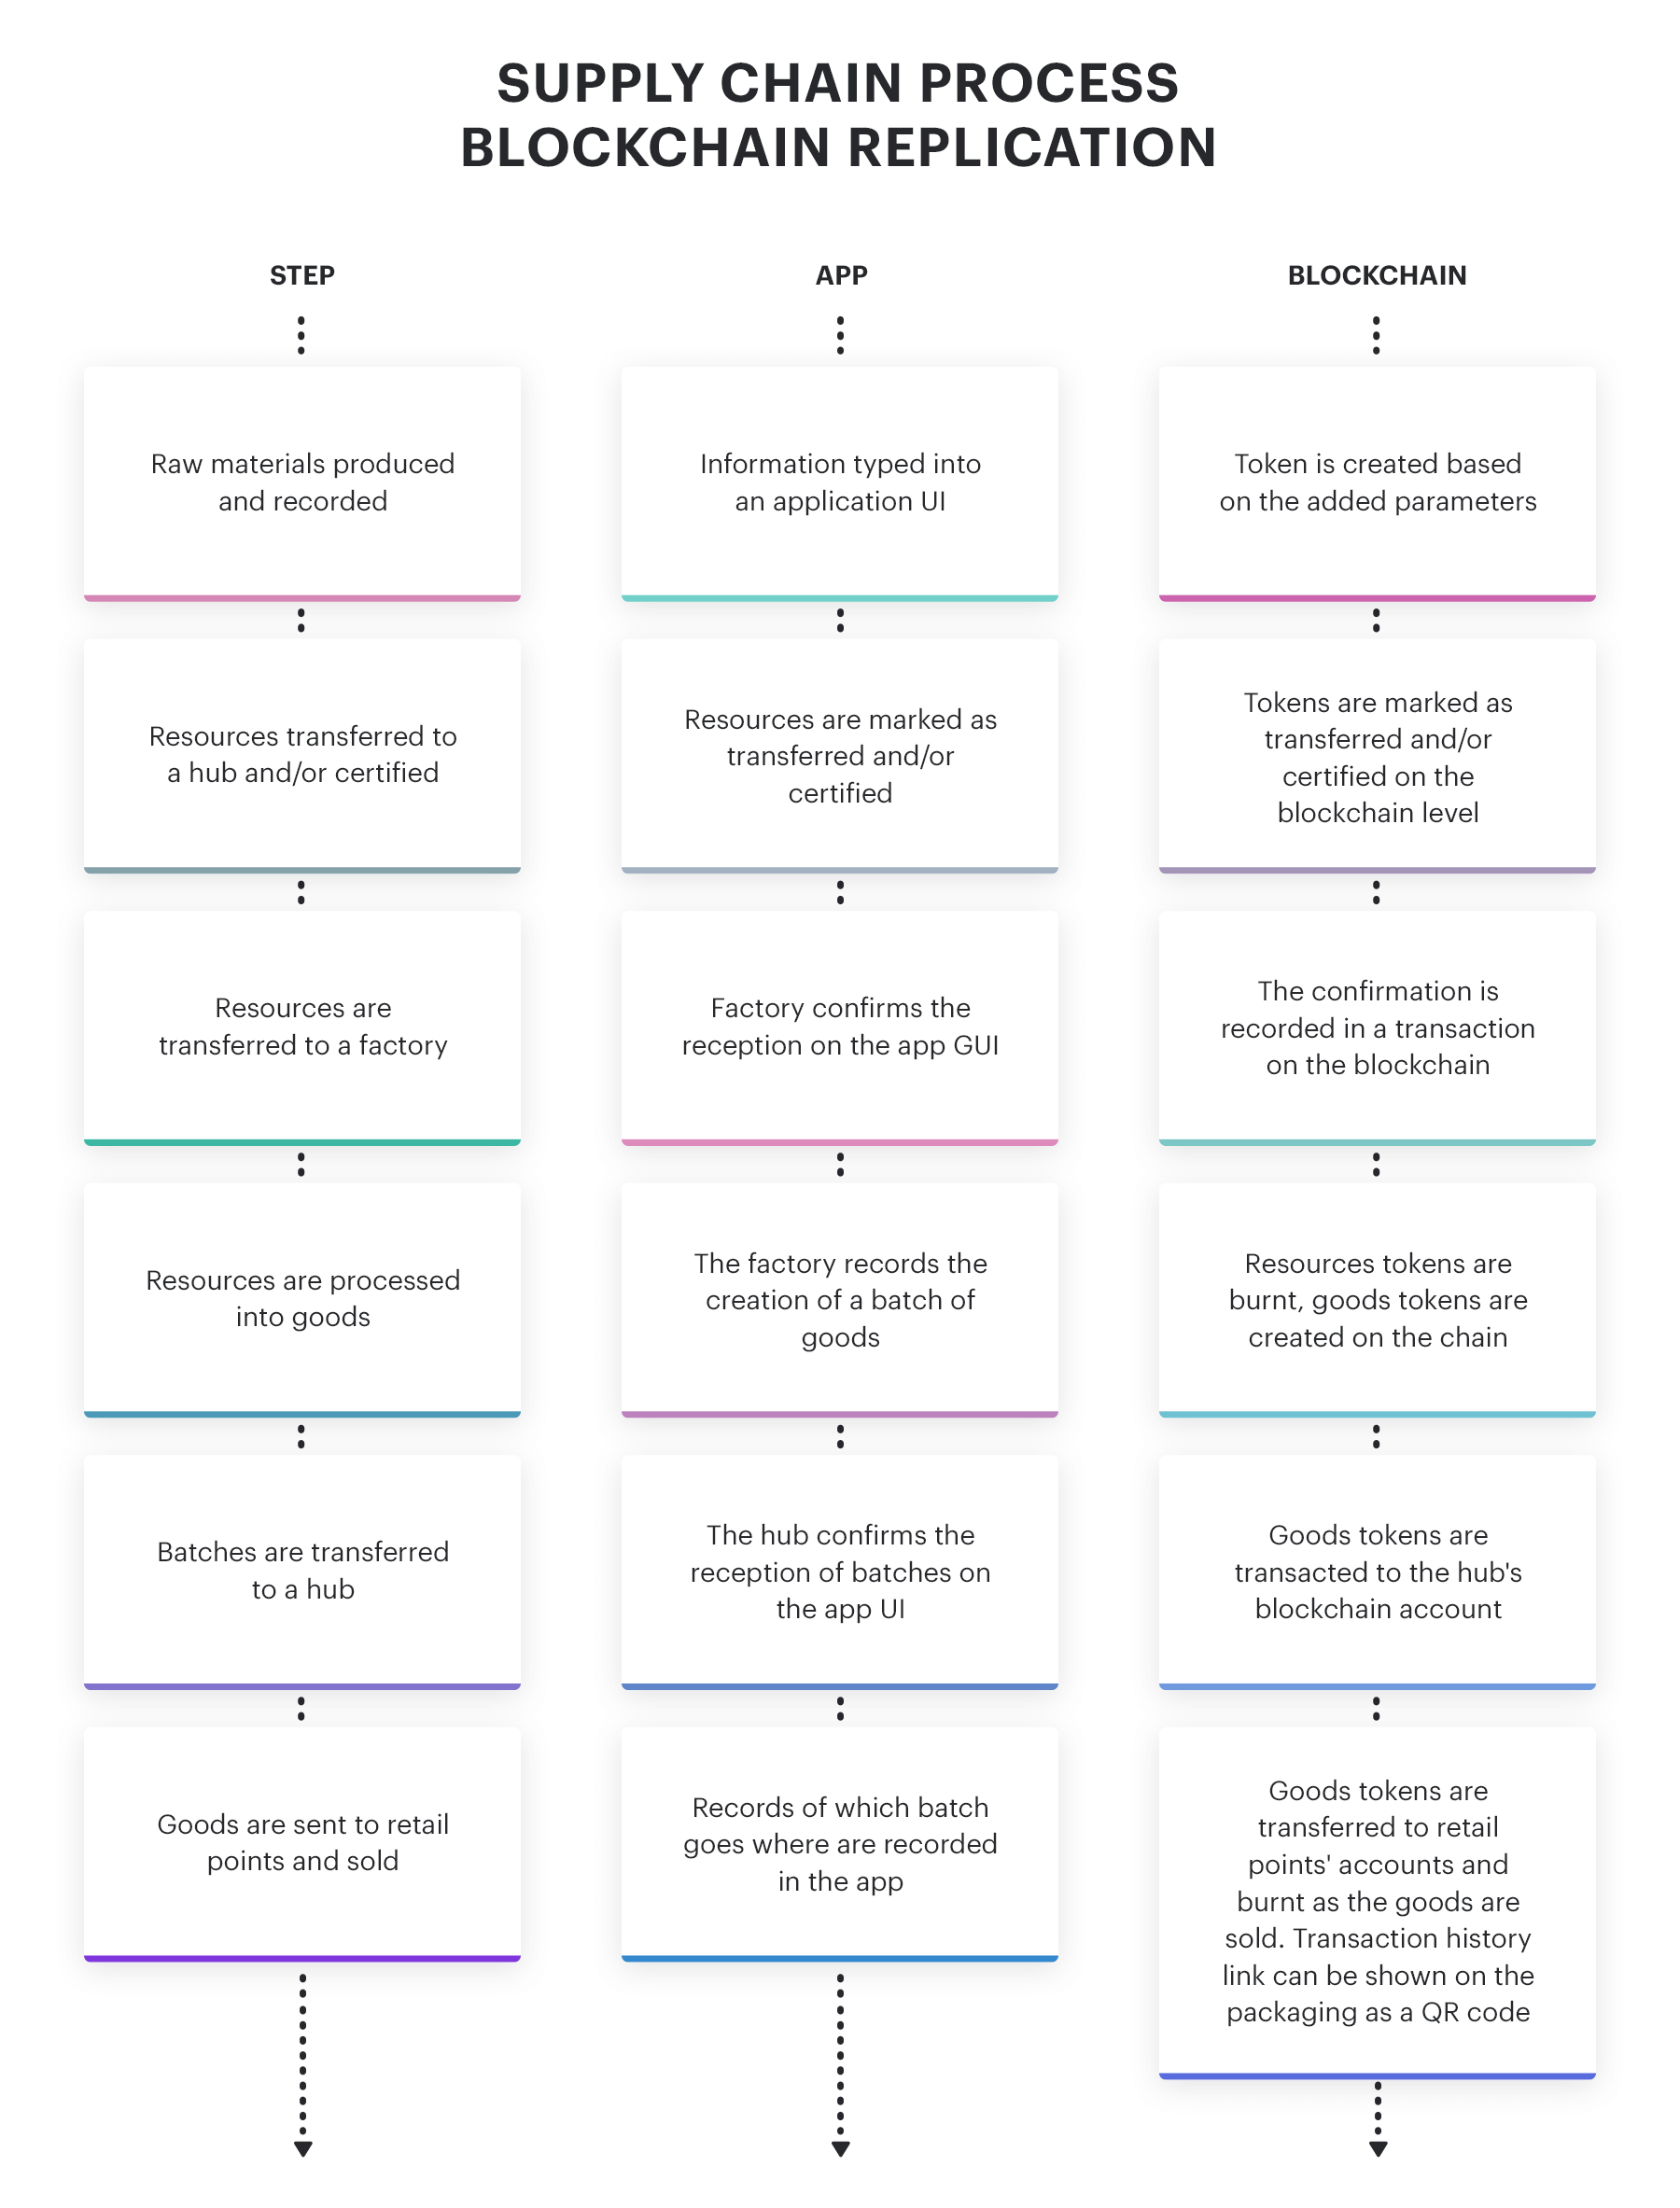 A scheme of the supply chain represented on Blockchain